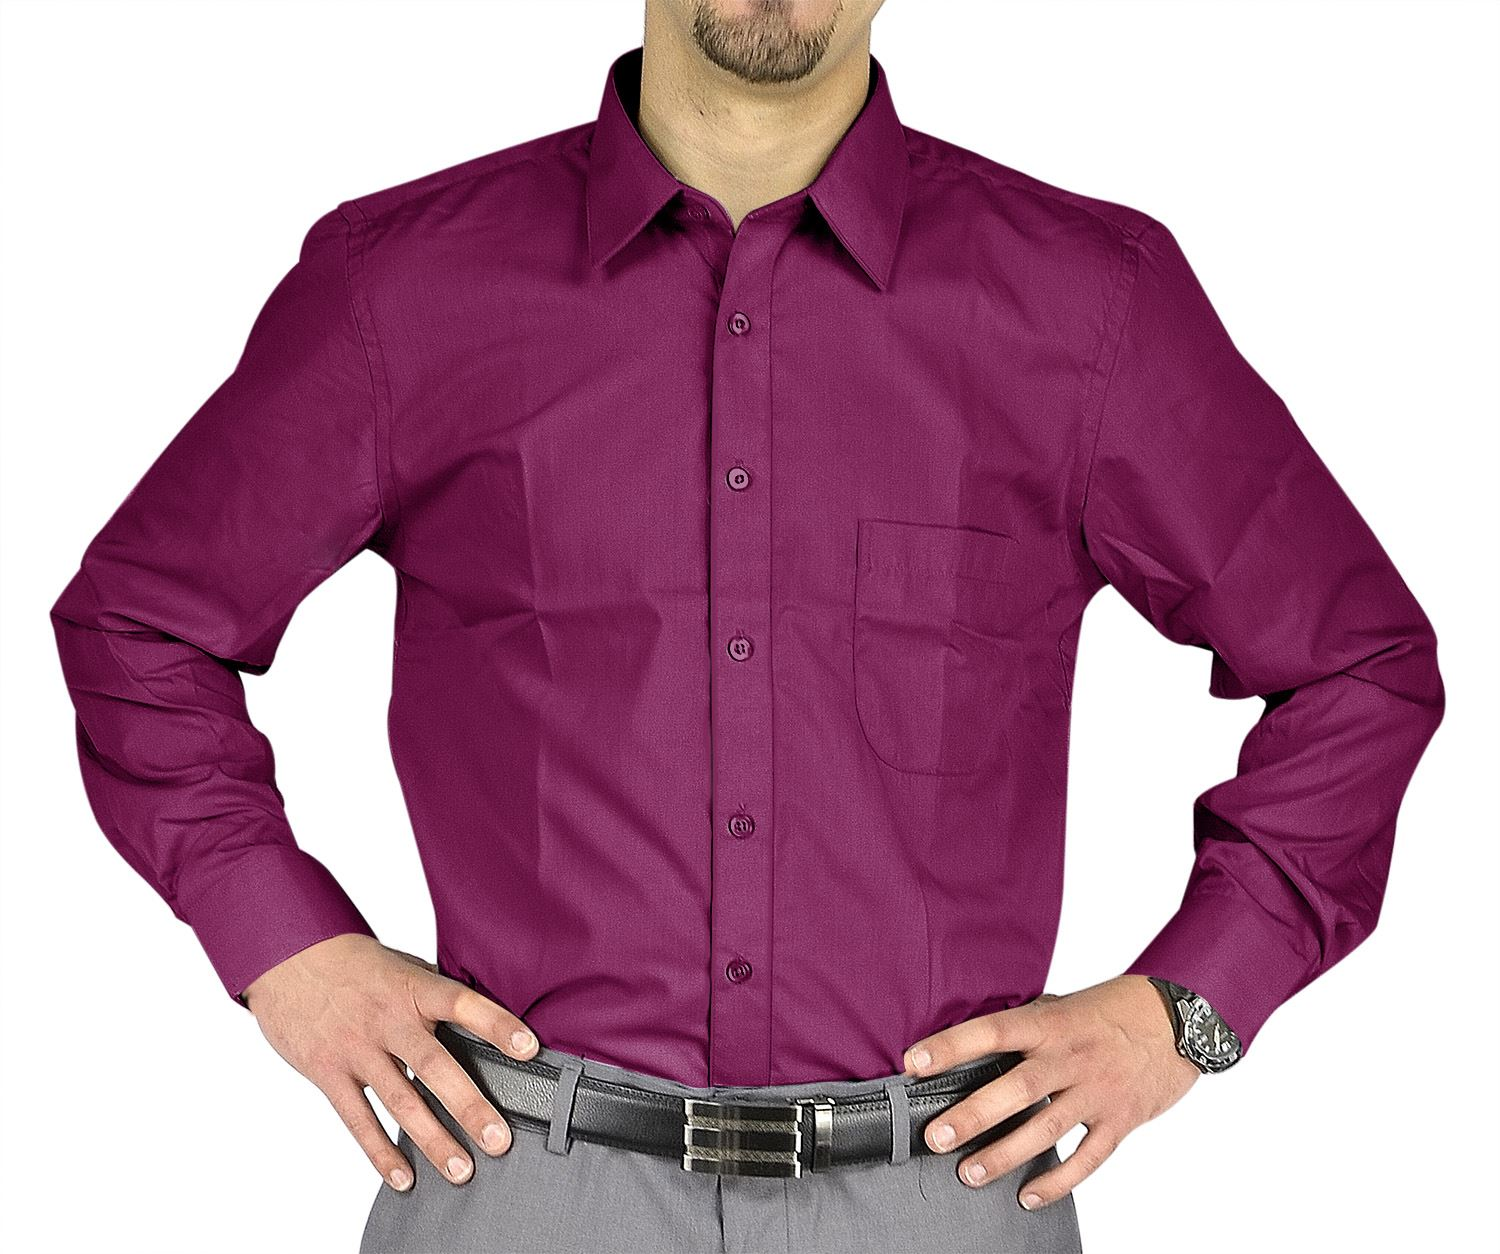 Moda Di Raza- Men's Slim Fit Casual Dress Shirts - Raspberry / 34/35-17.5